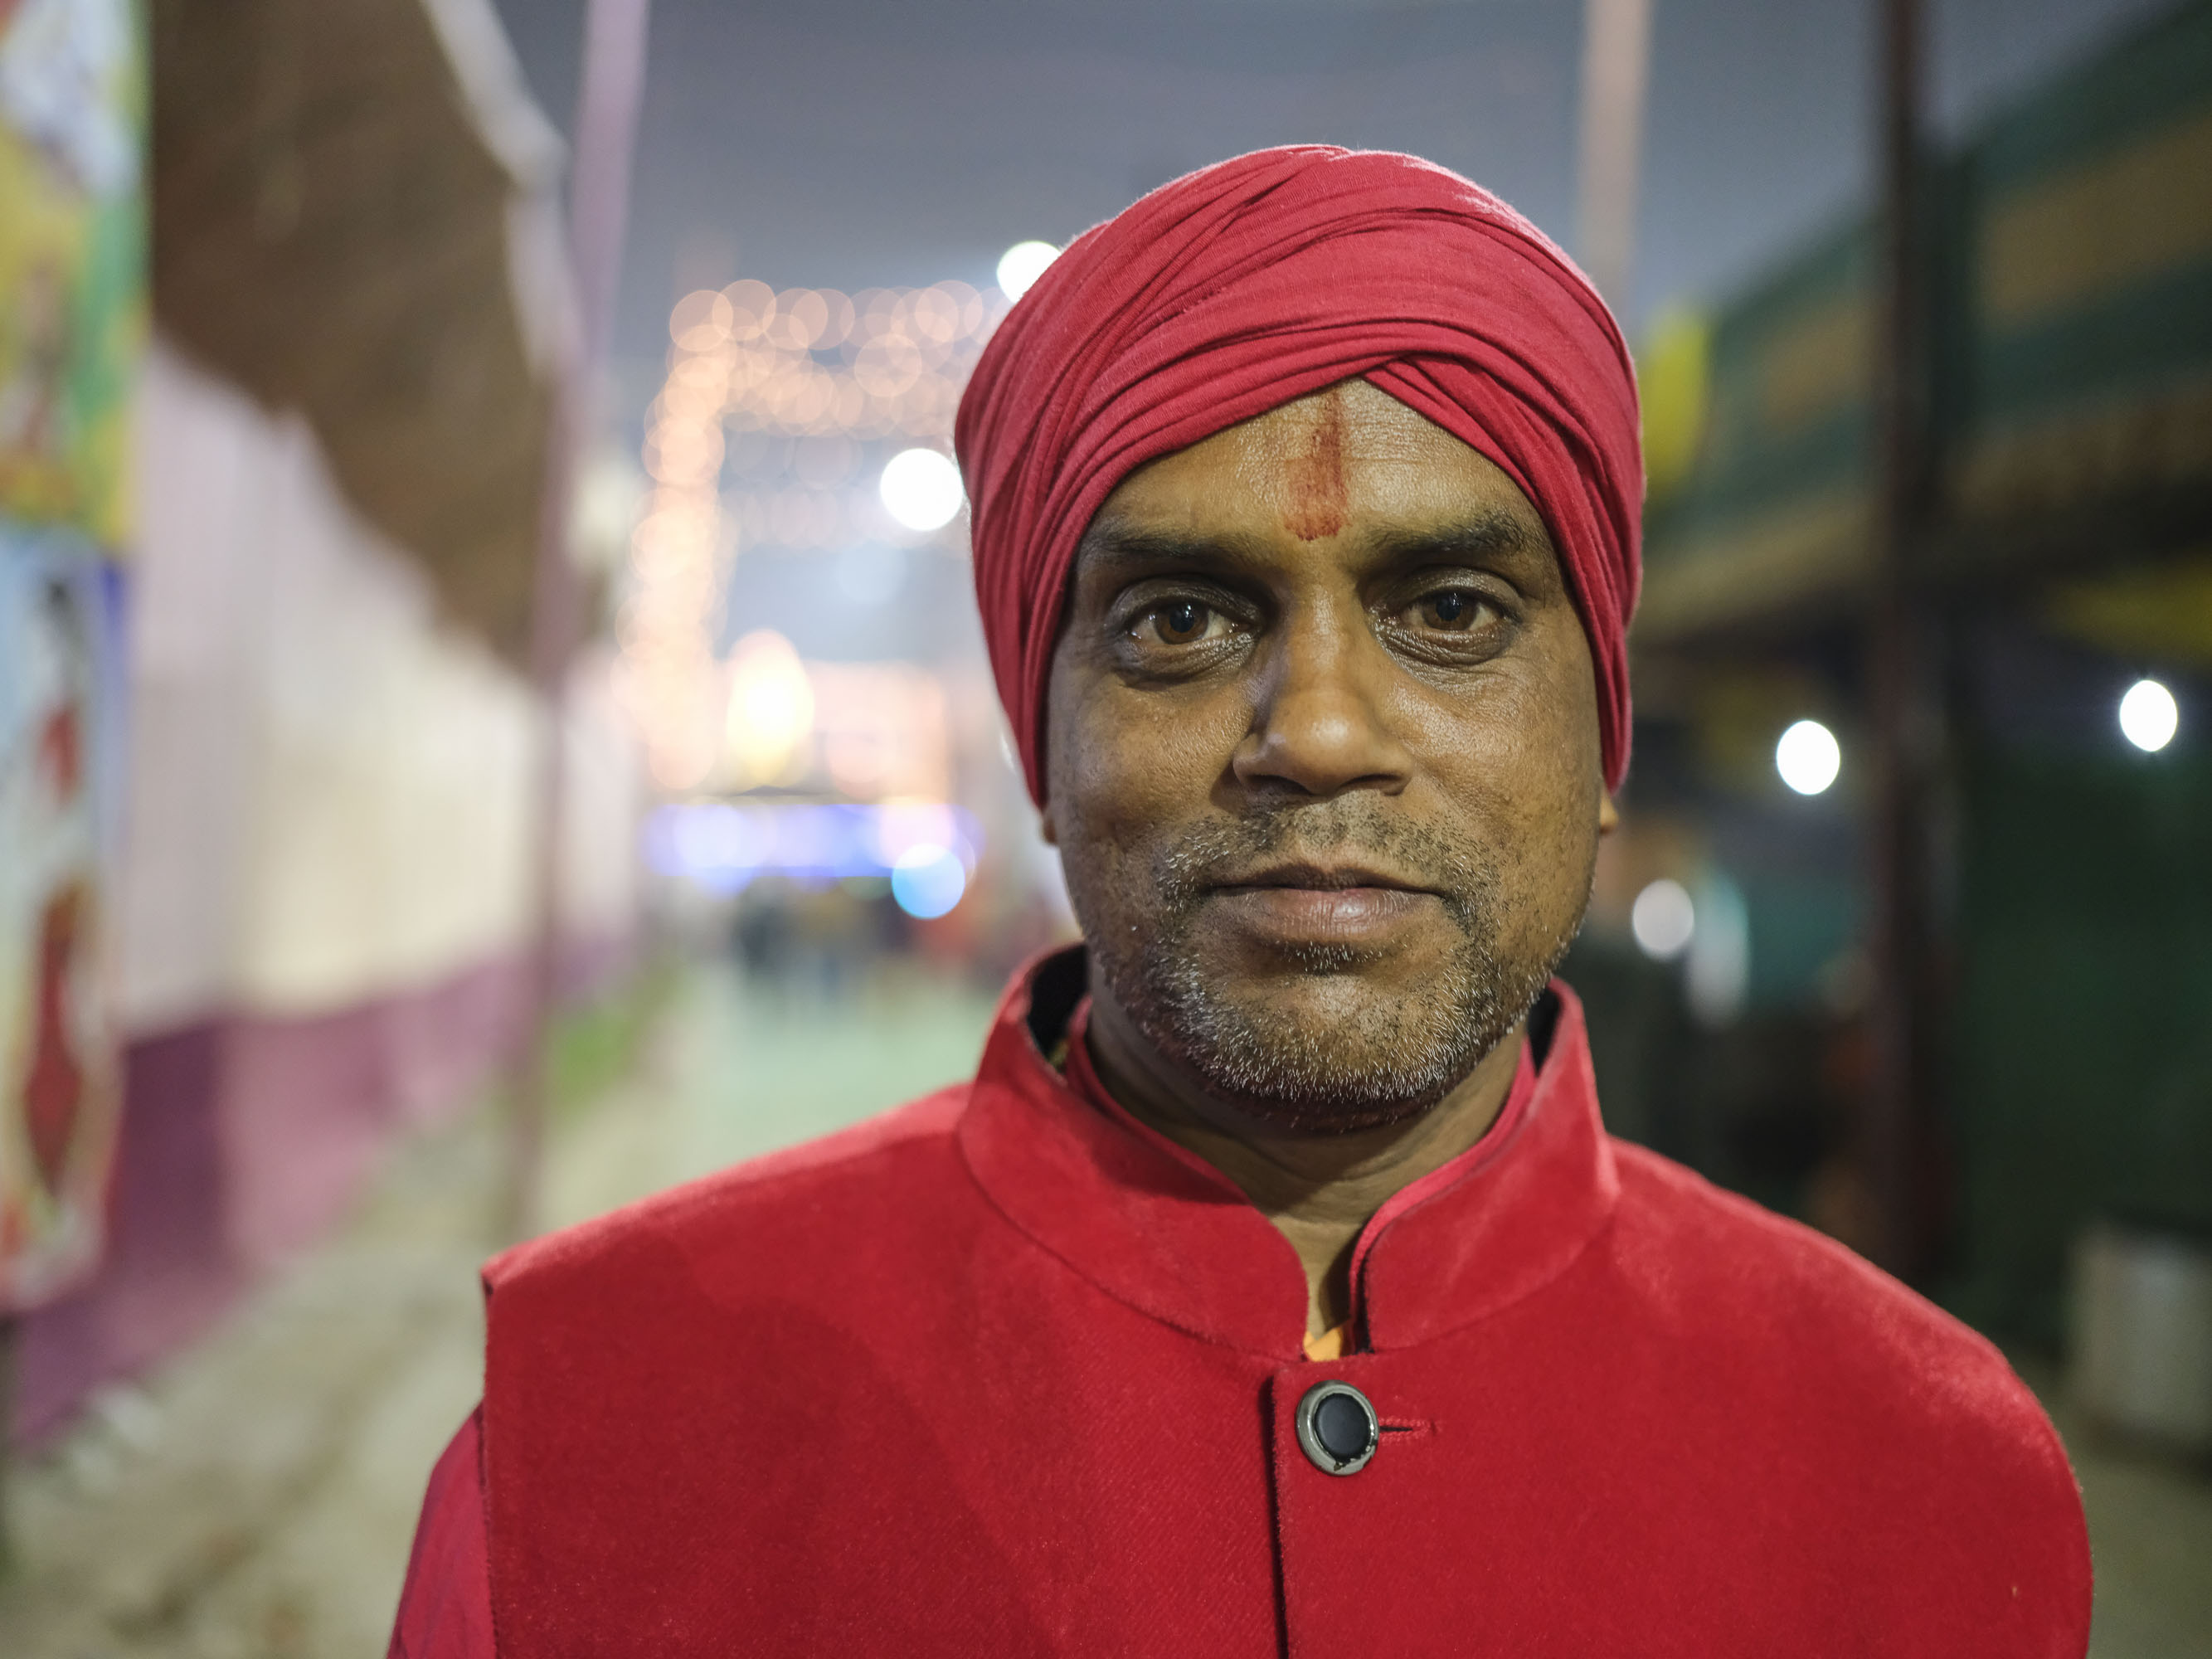 night portrait man pilgrims Kumbh mela 2019 India Allahabad Prayagraj Ardh hindu religious Festival event rivers photographer jose jeuland photography